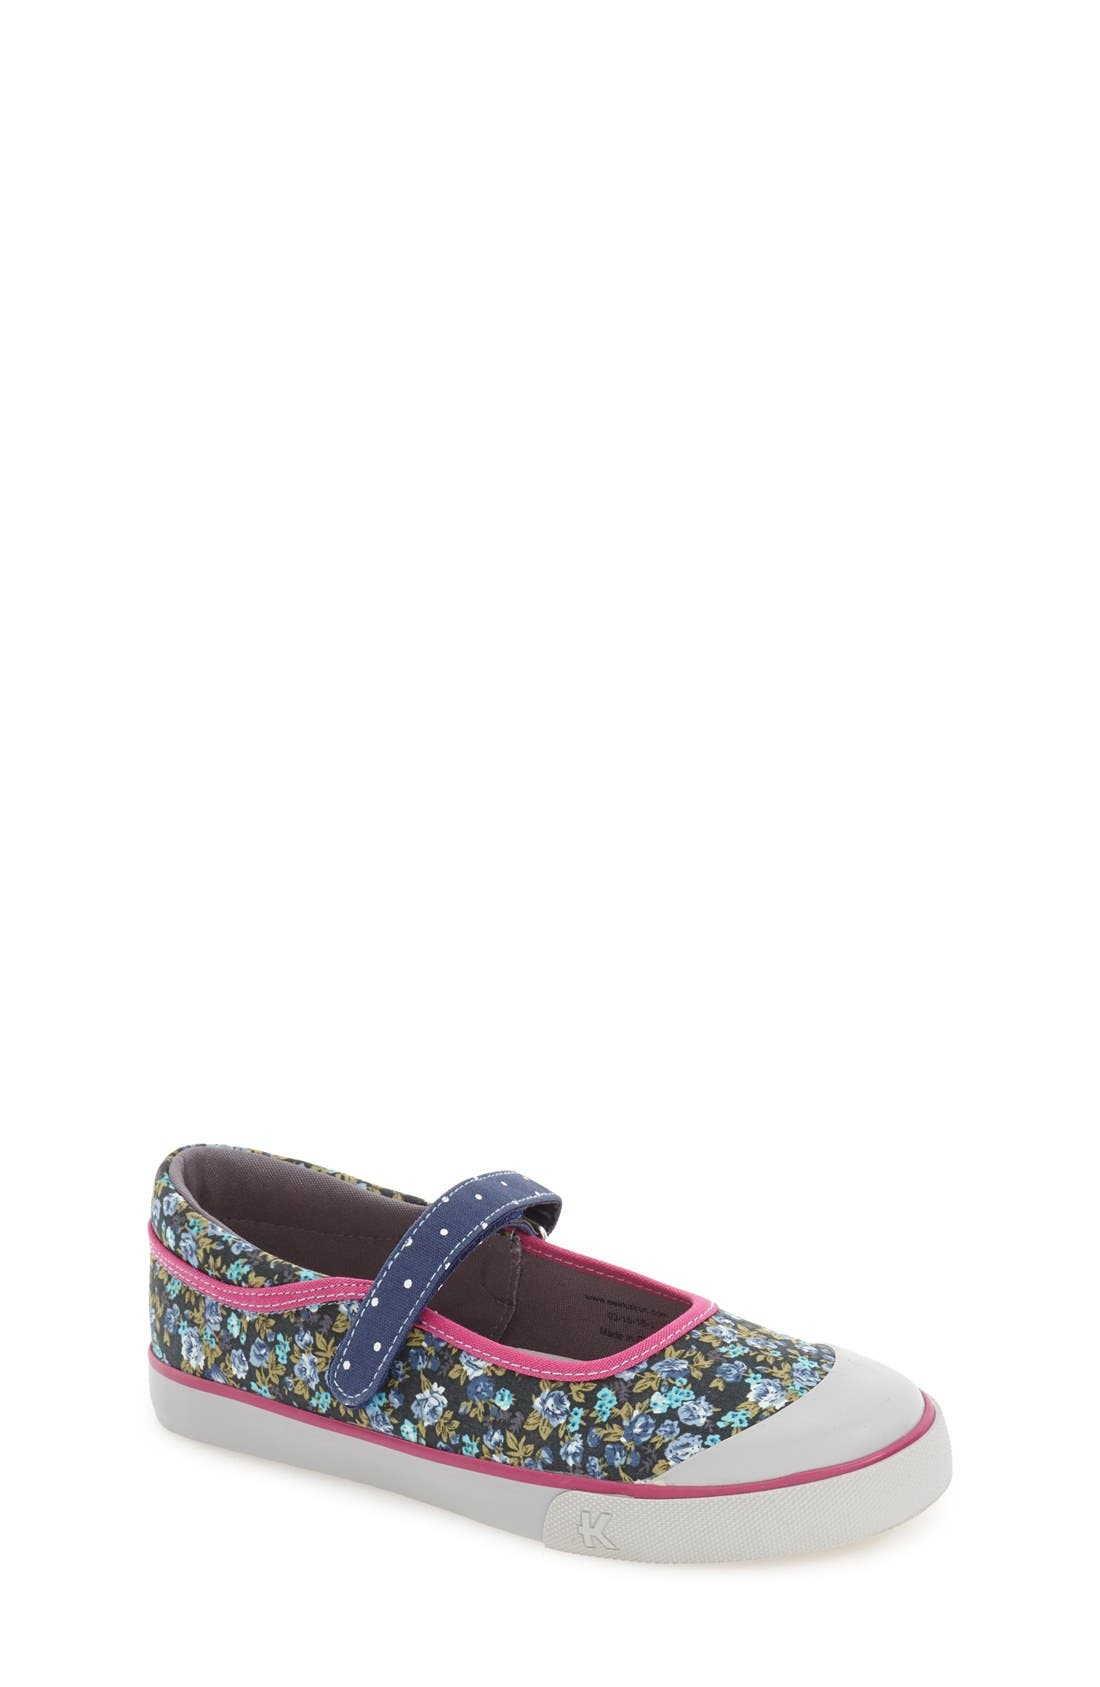 'Marie' Mary Jane Sneaker,                             Main thumbnail 2, color,